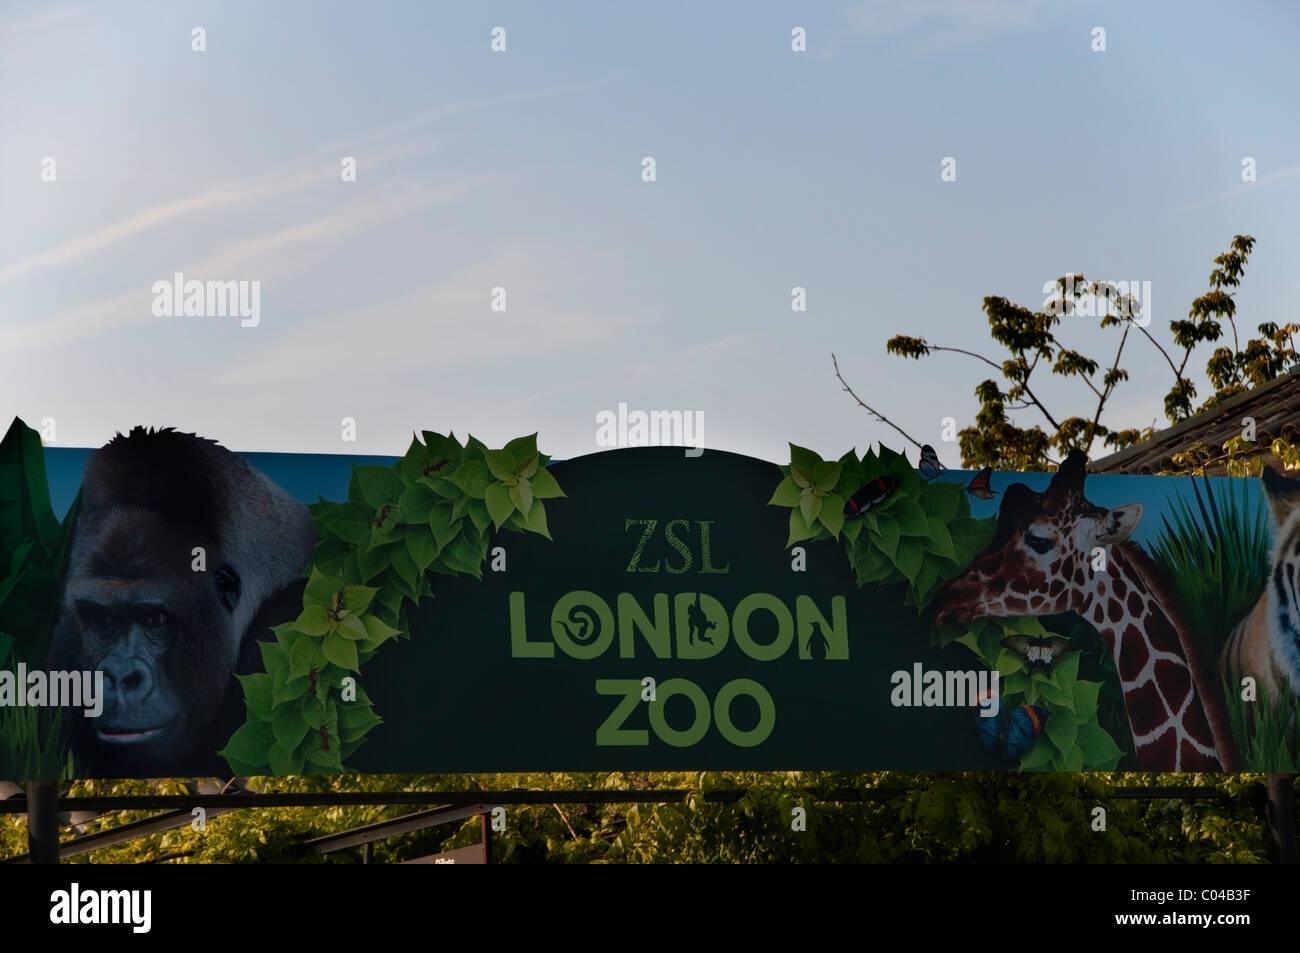 Le Zoo de Londres signe, close-up, des jardins zoologiques entrée privée, Regents Park, Angleterre, Royaume Photo Stock